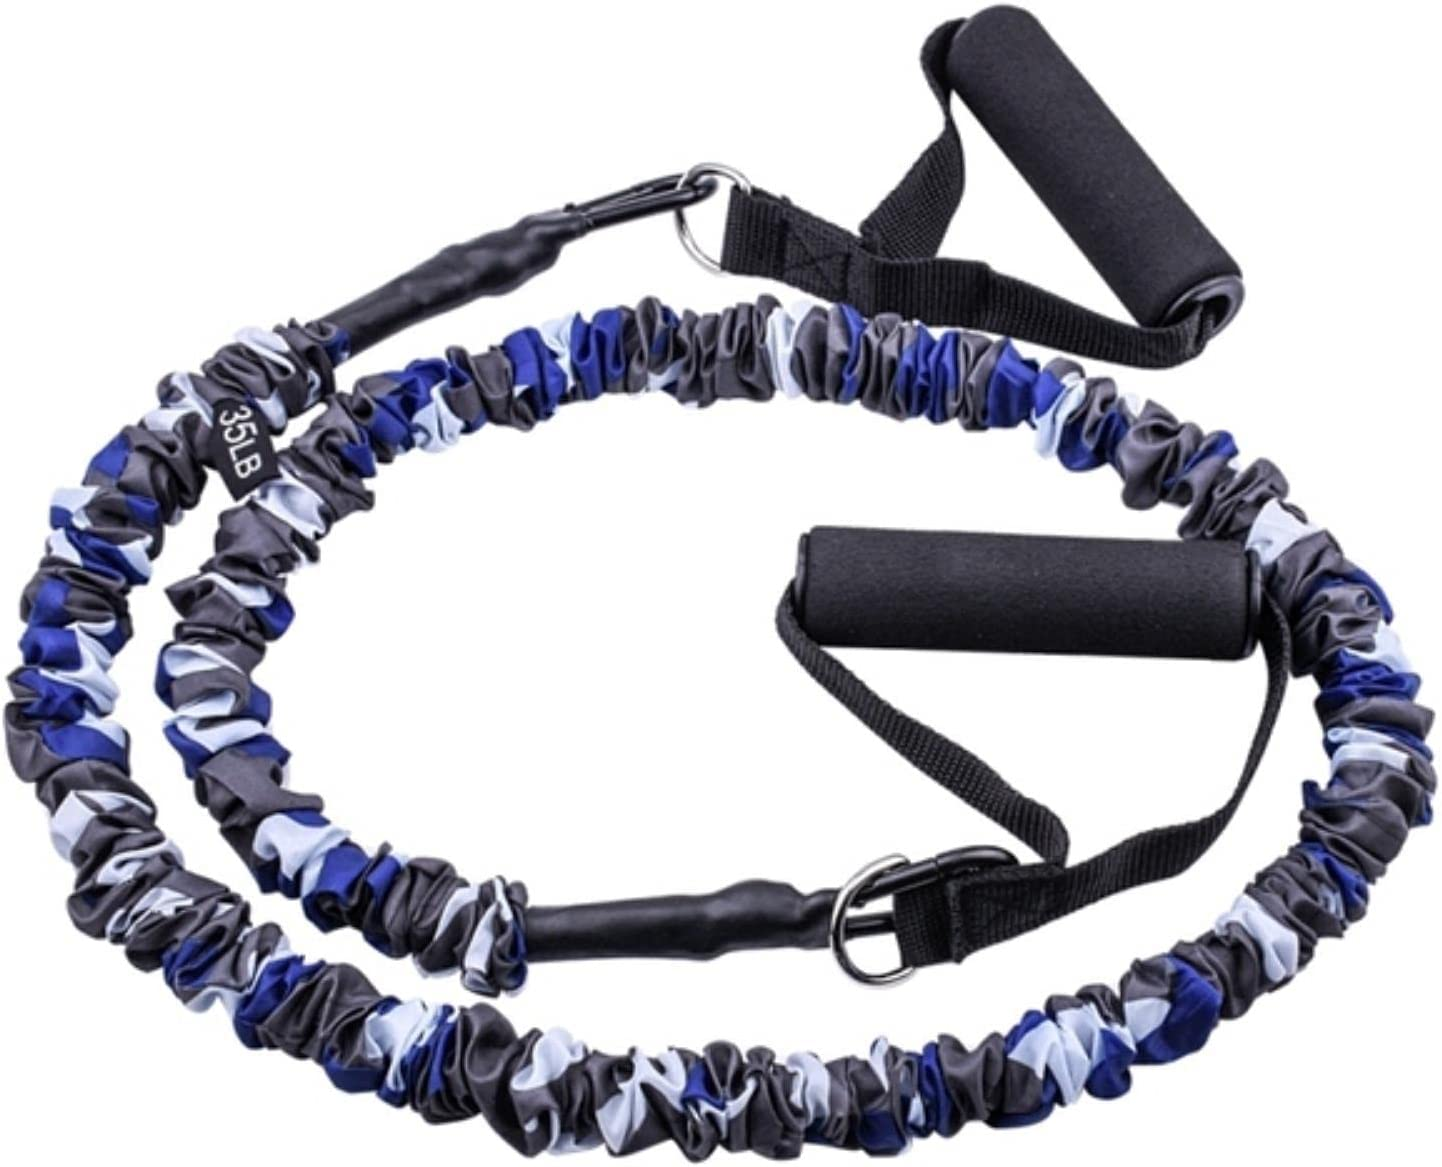 Vottle Yoga Gum Fitness Resistance Rope Expander M Sale Workout In stock Chest